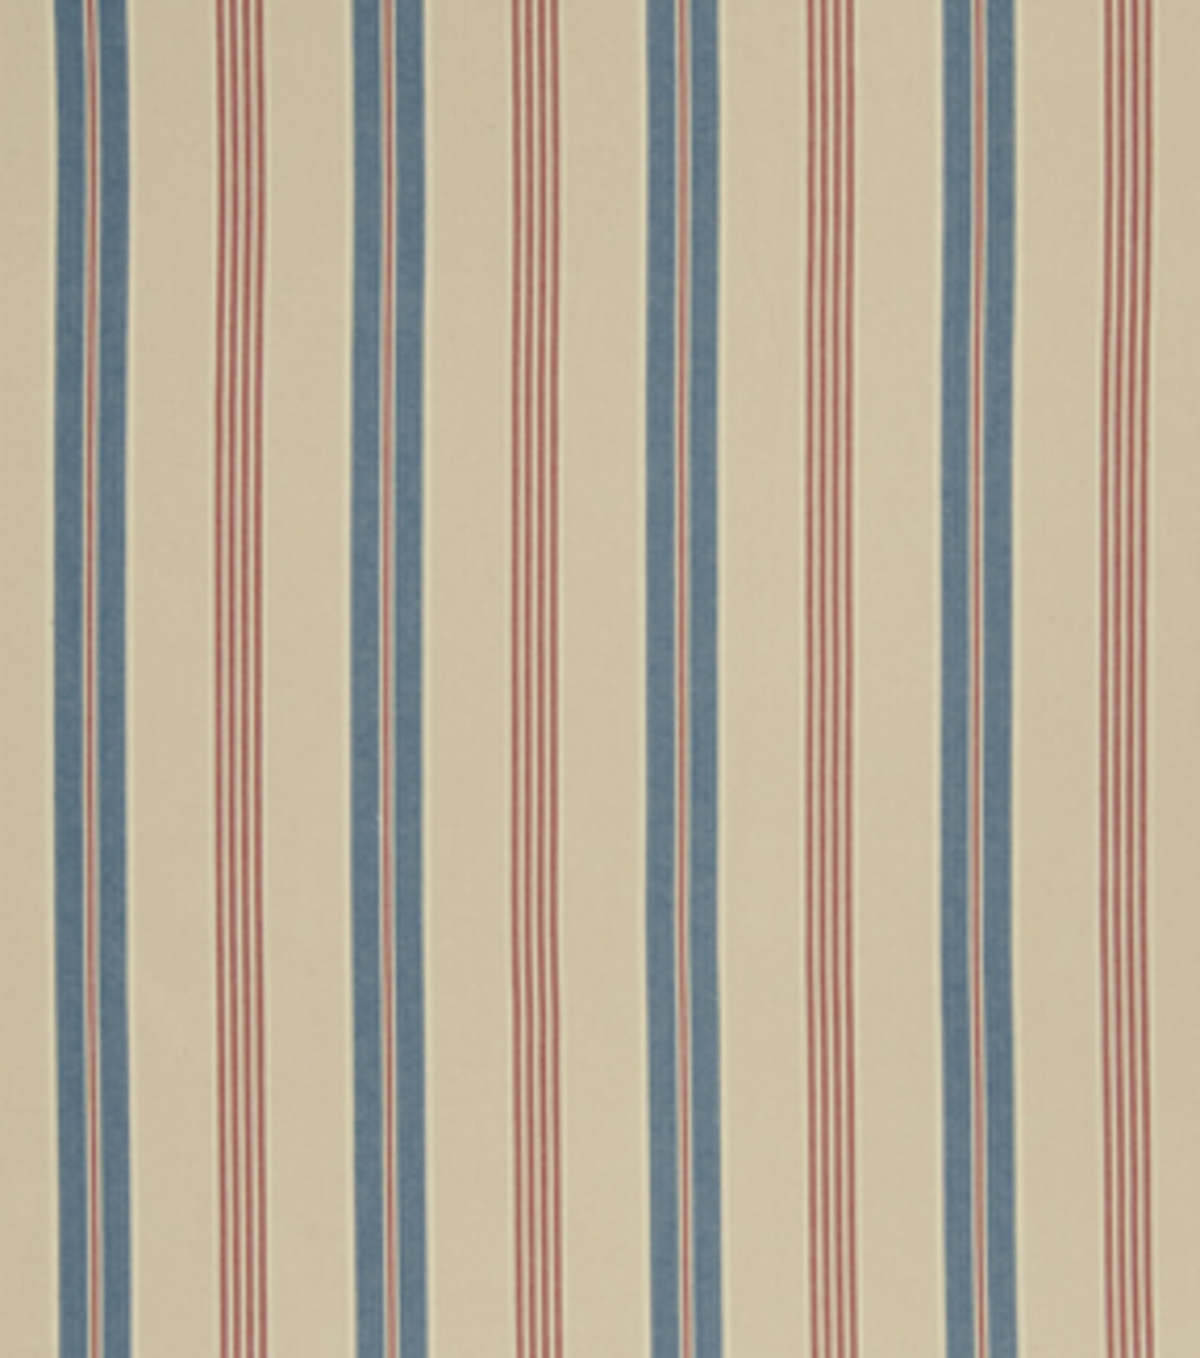 Home Decor 8\u0022x8\u0022 Fabric Swatch-French General  Glamorous Indigo